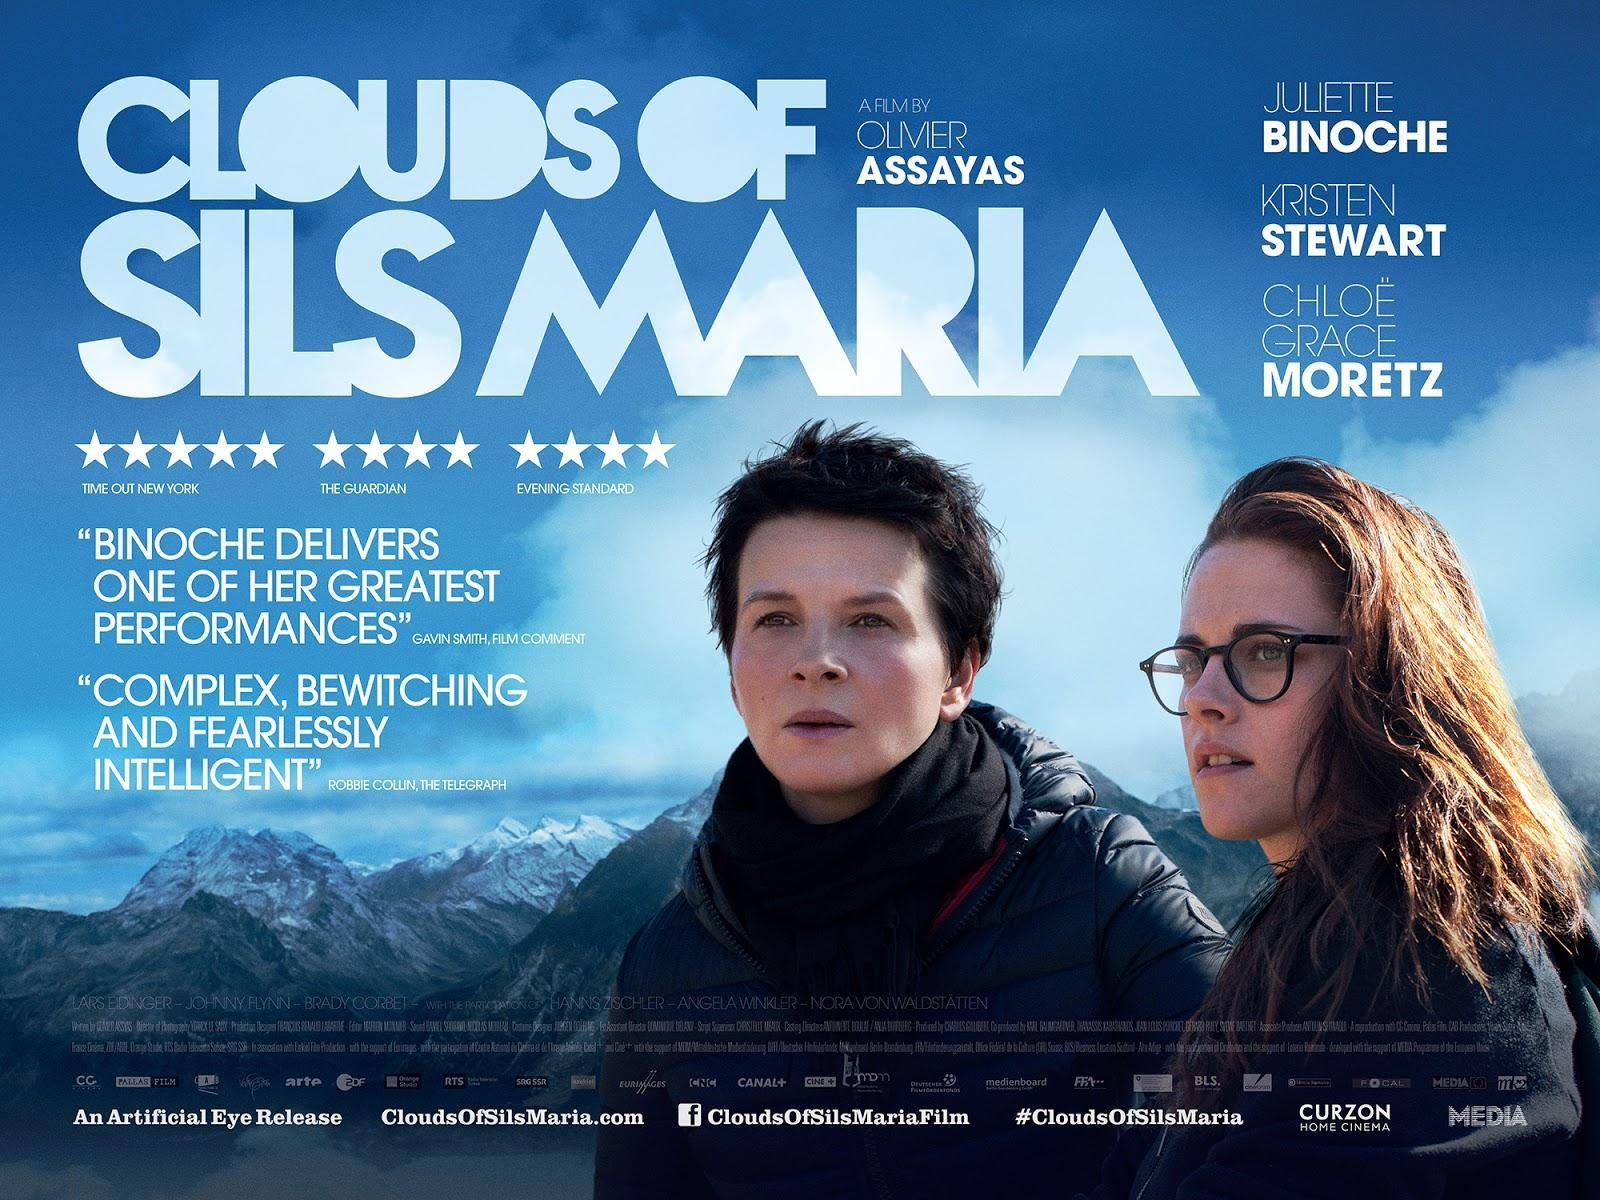 Image gallery for Clouds of Sils Maria - FilmAffinity